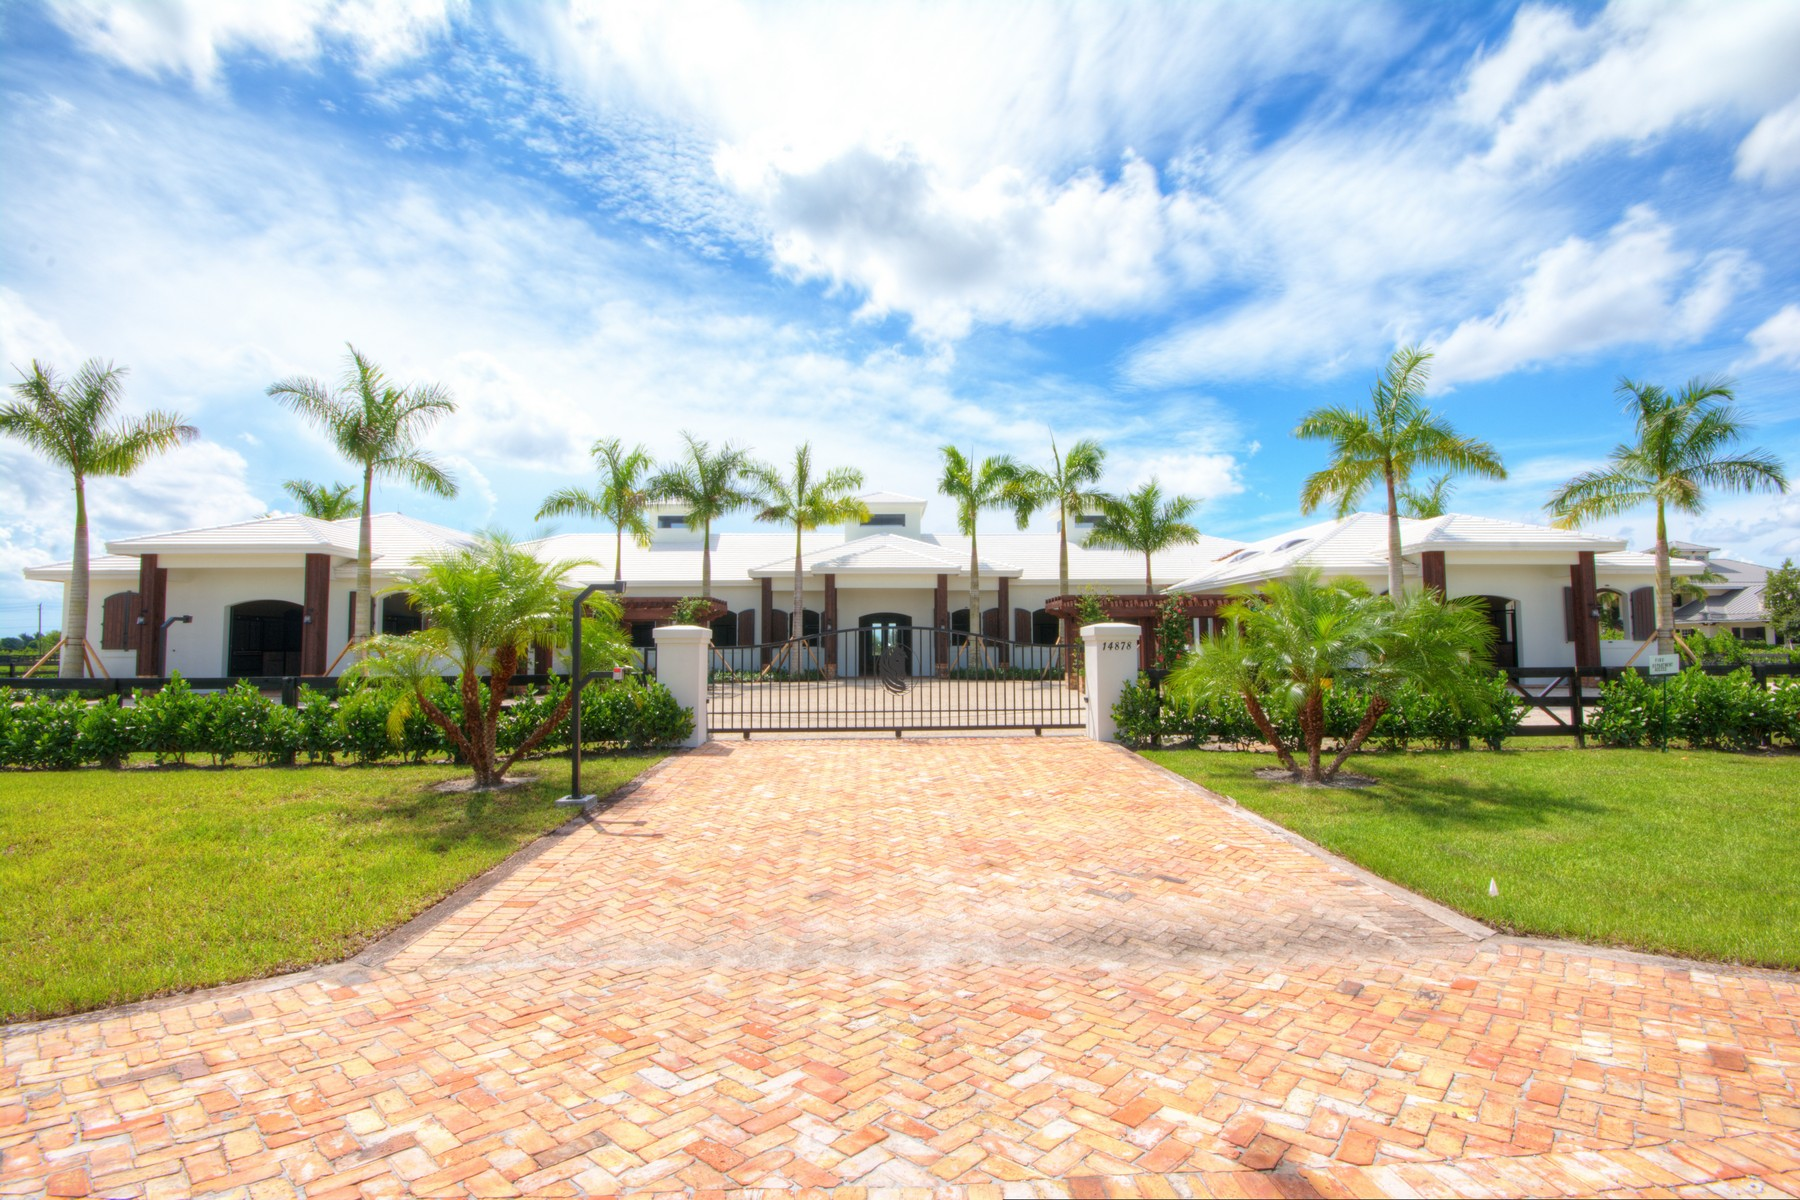 Farm / Ranch / Plantation for Sale at 14878 Grand Prix Village 14878 Grand Prix Village Drive Wellington, Florida 33414 United States